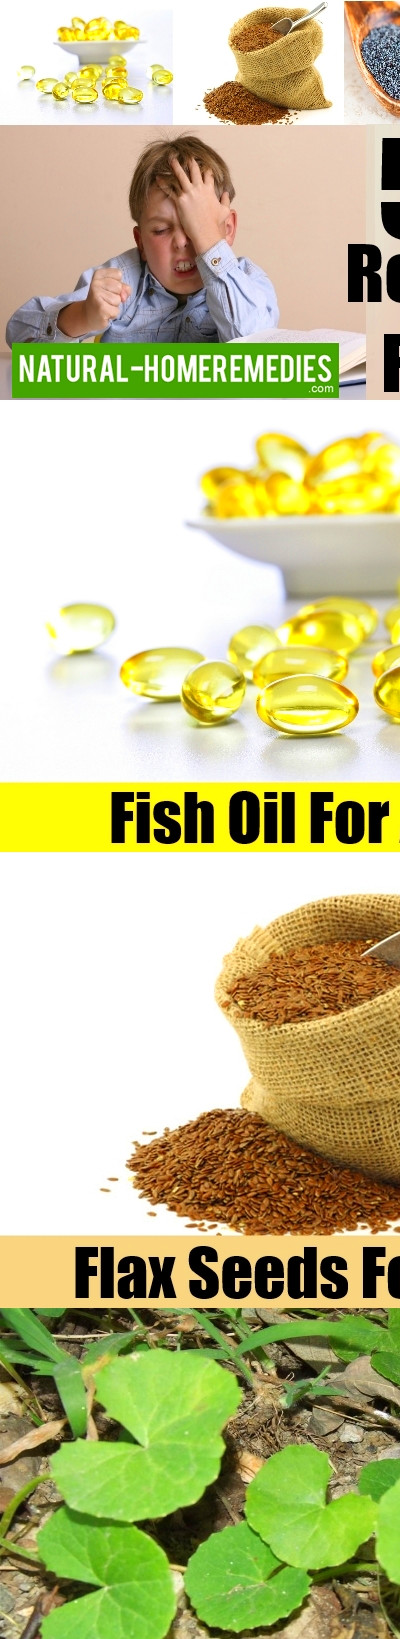 5 Home Remedies For ADHD – Natural Home Remedies & Supplements